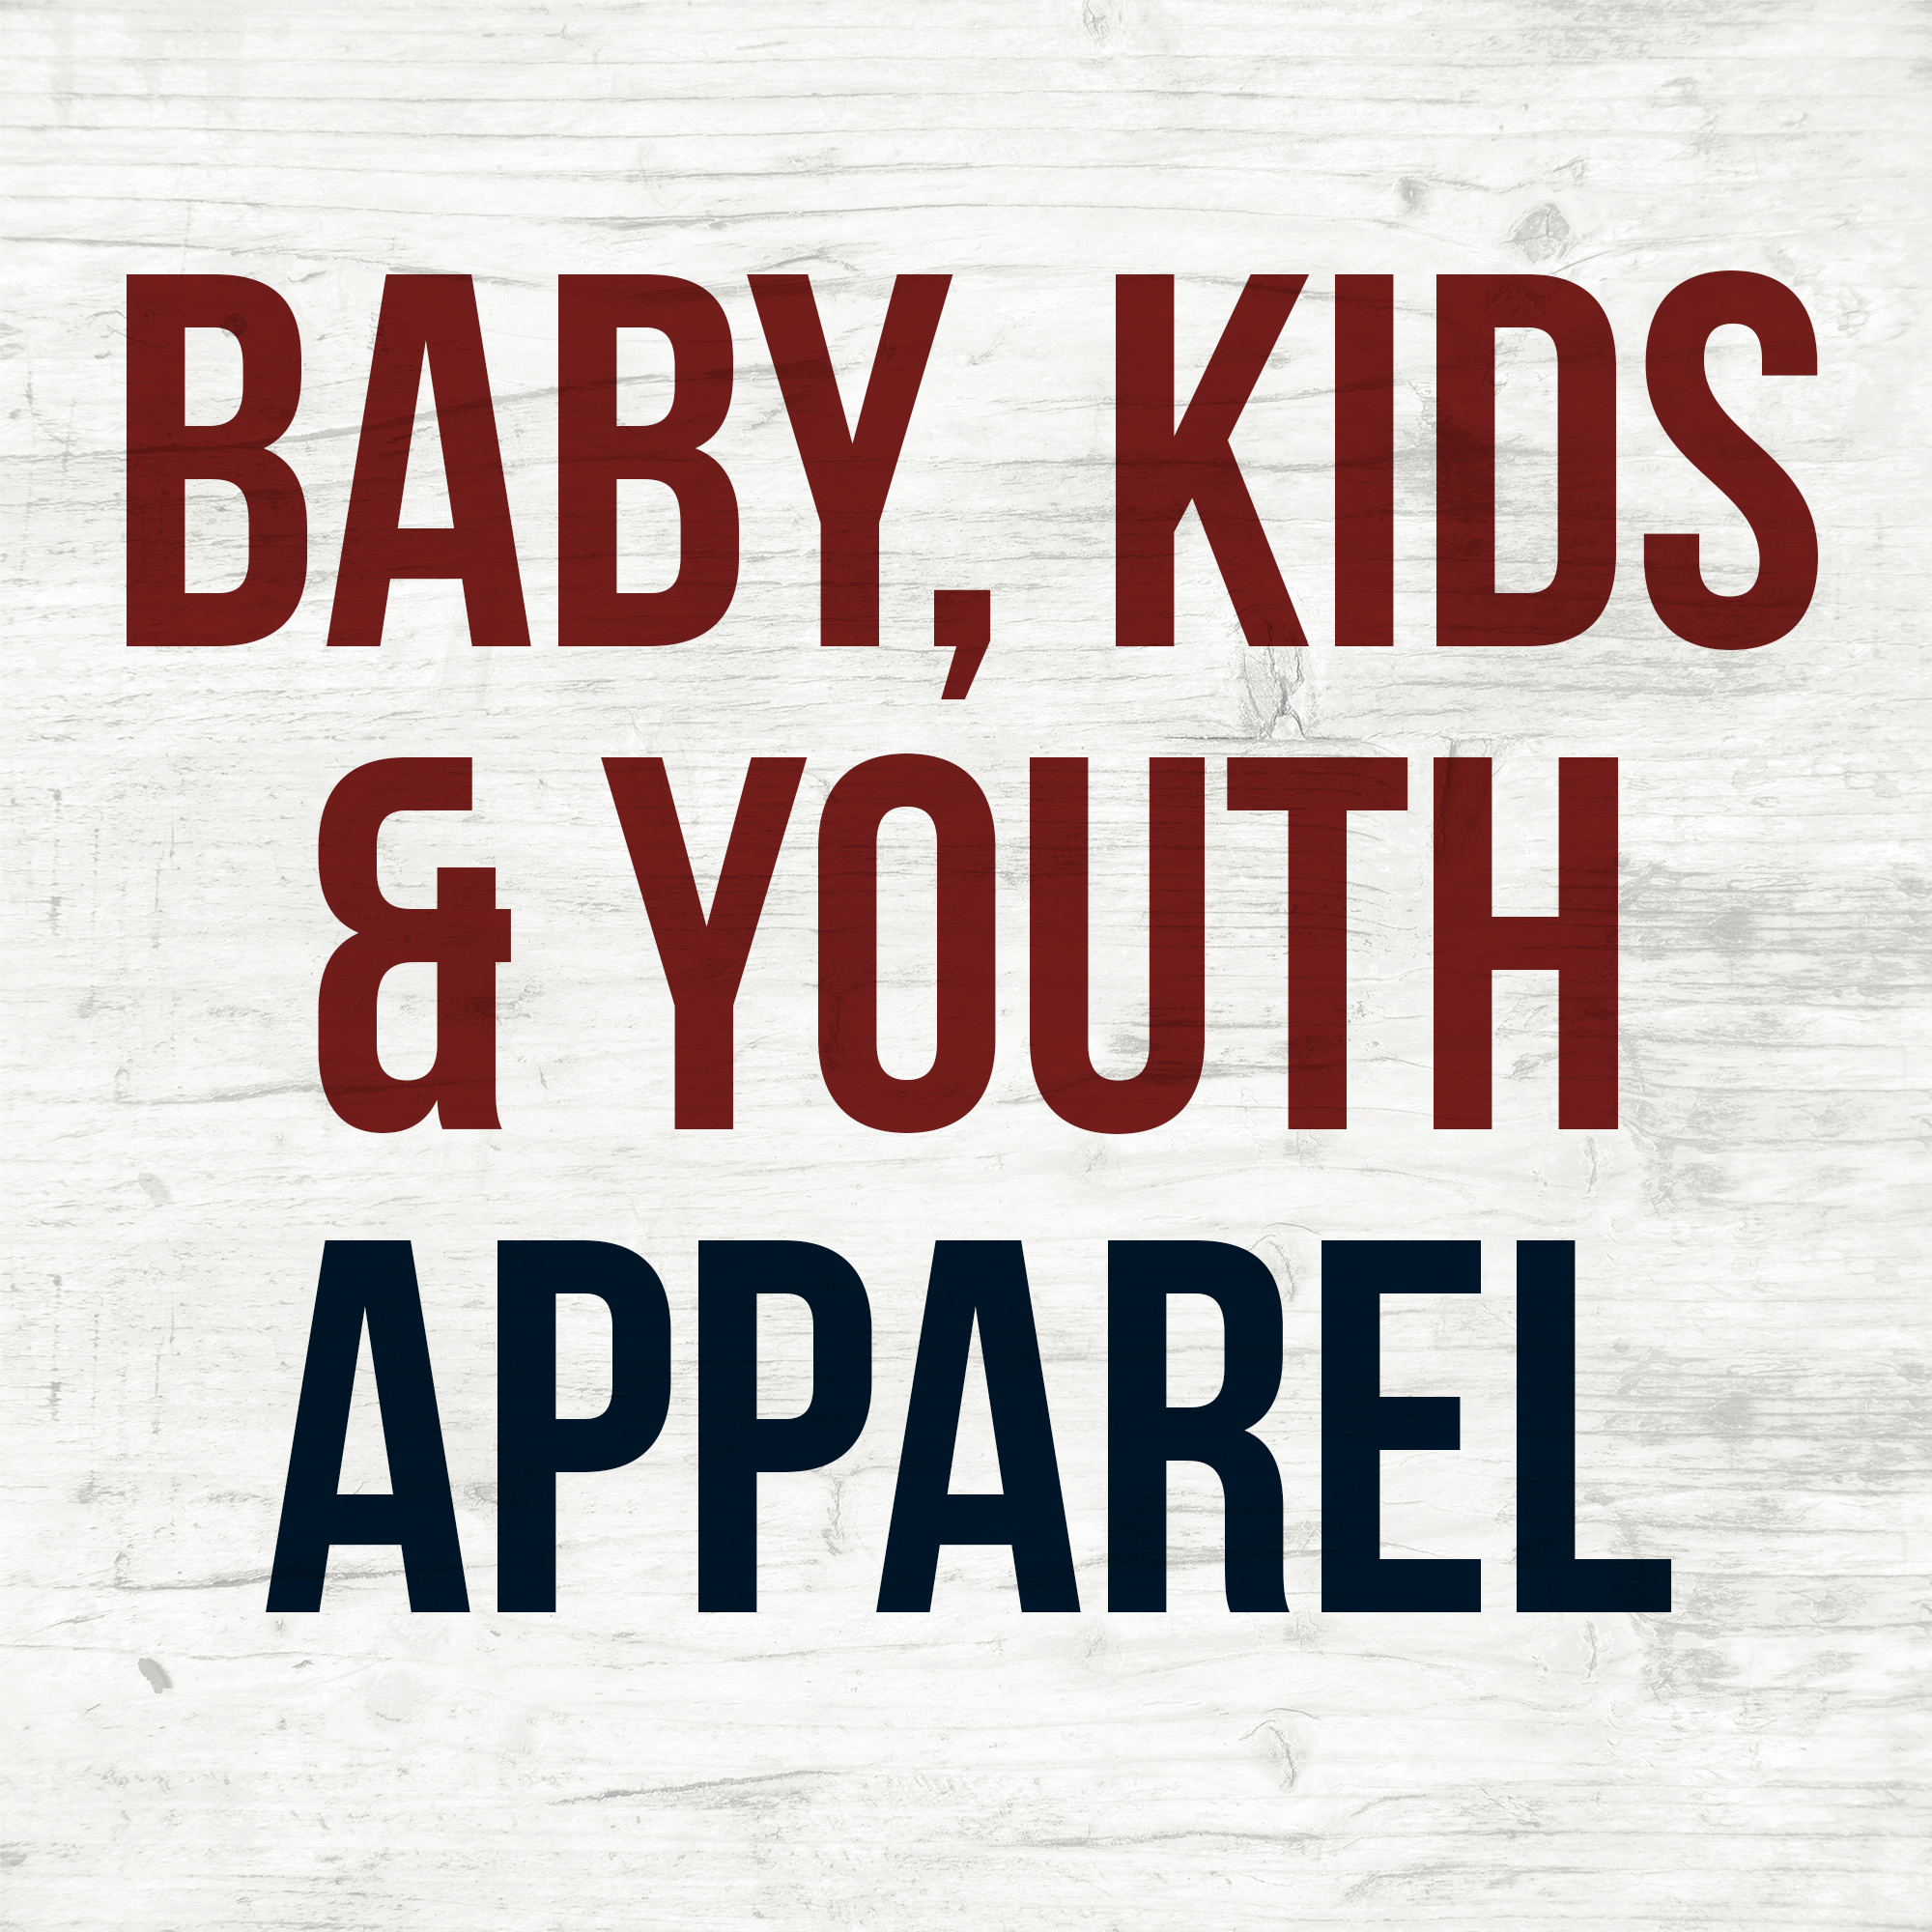 Baby - Kids - Youth